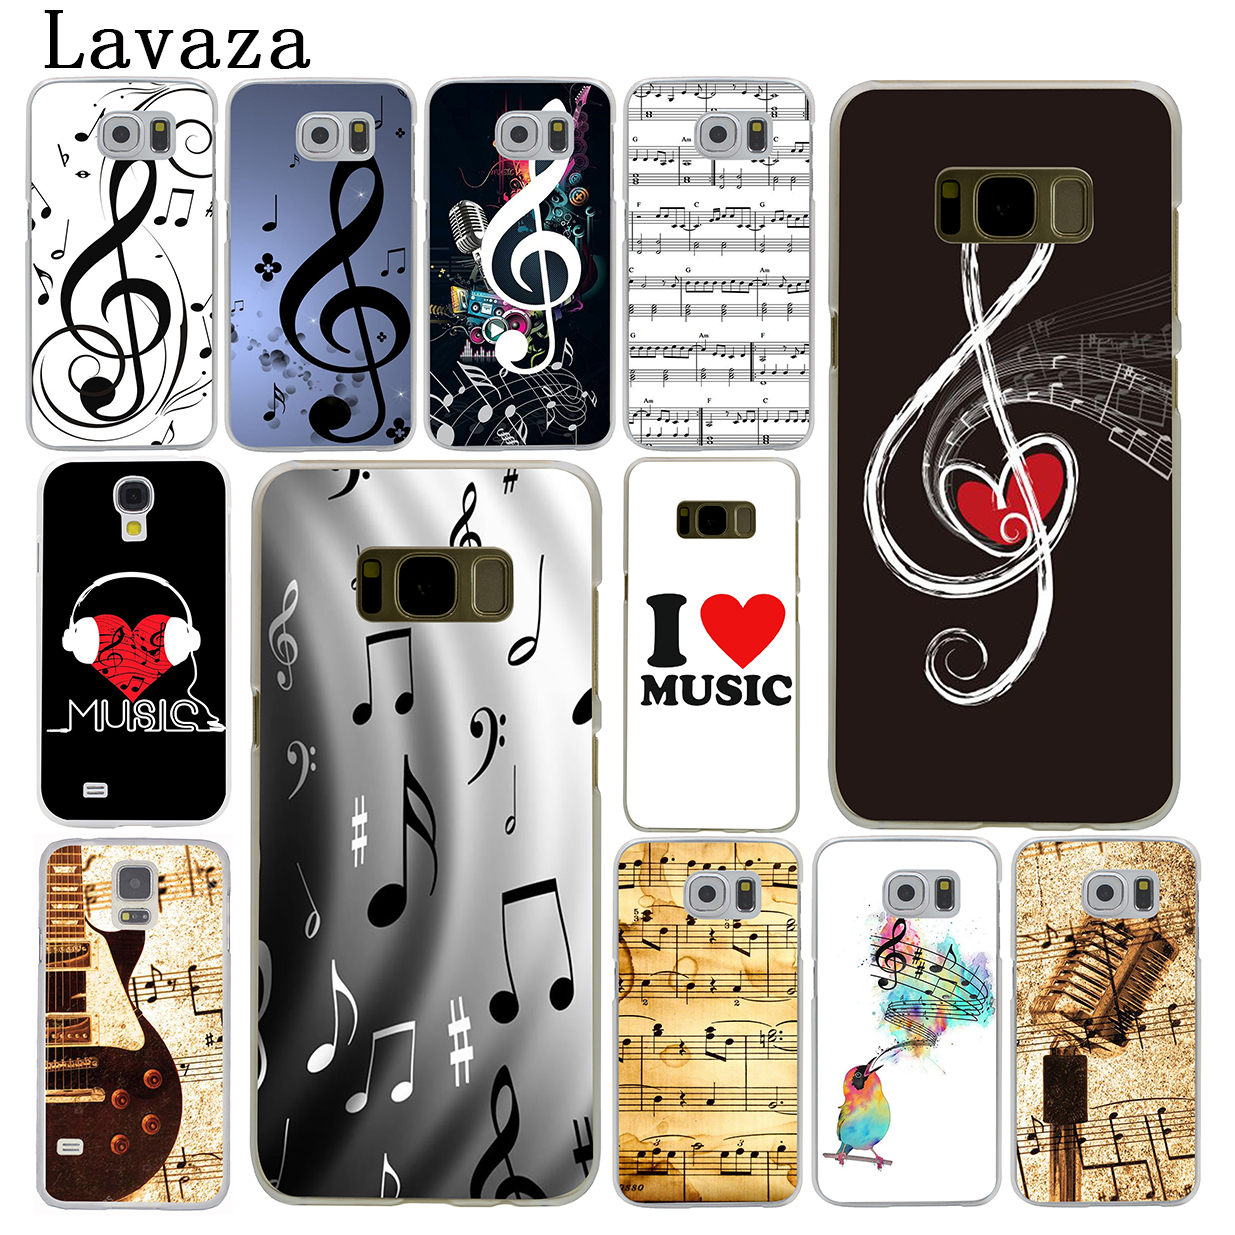 2019 Latest Design Lavaza Old Musical Note Hard Phone Case For Samsung Galaxy S6 S7 Edge S8 S9 S10 Plus S10e Cover Punctual Timing